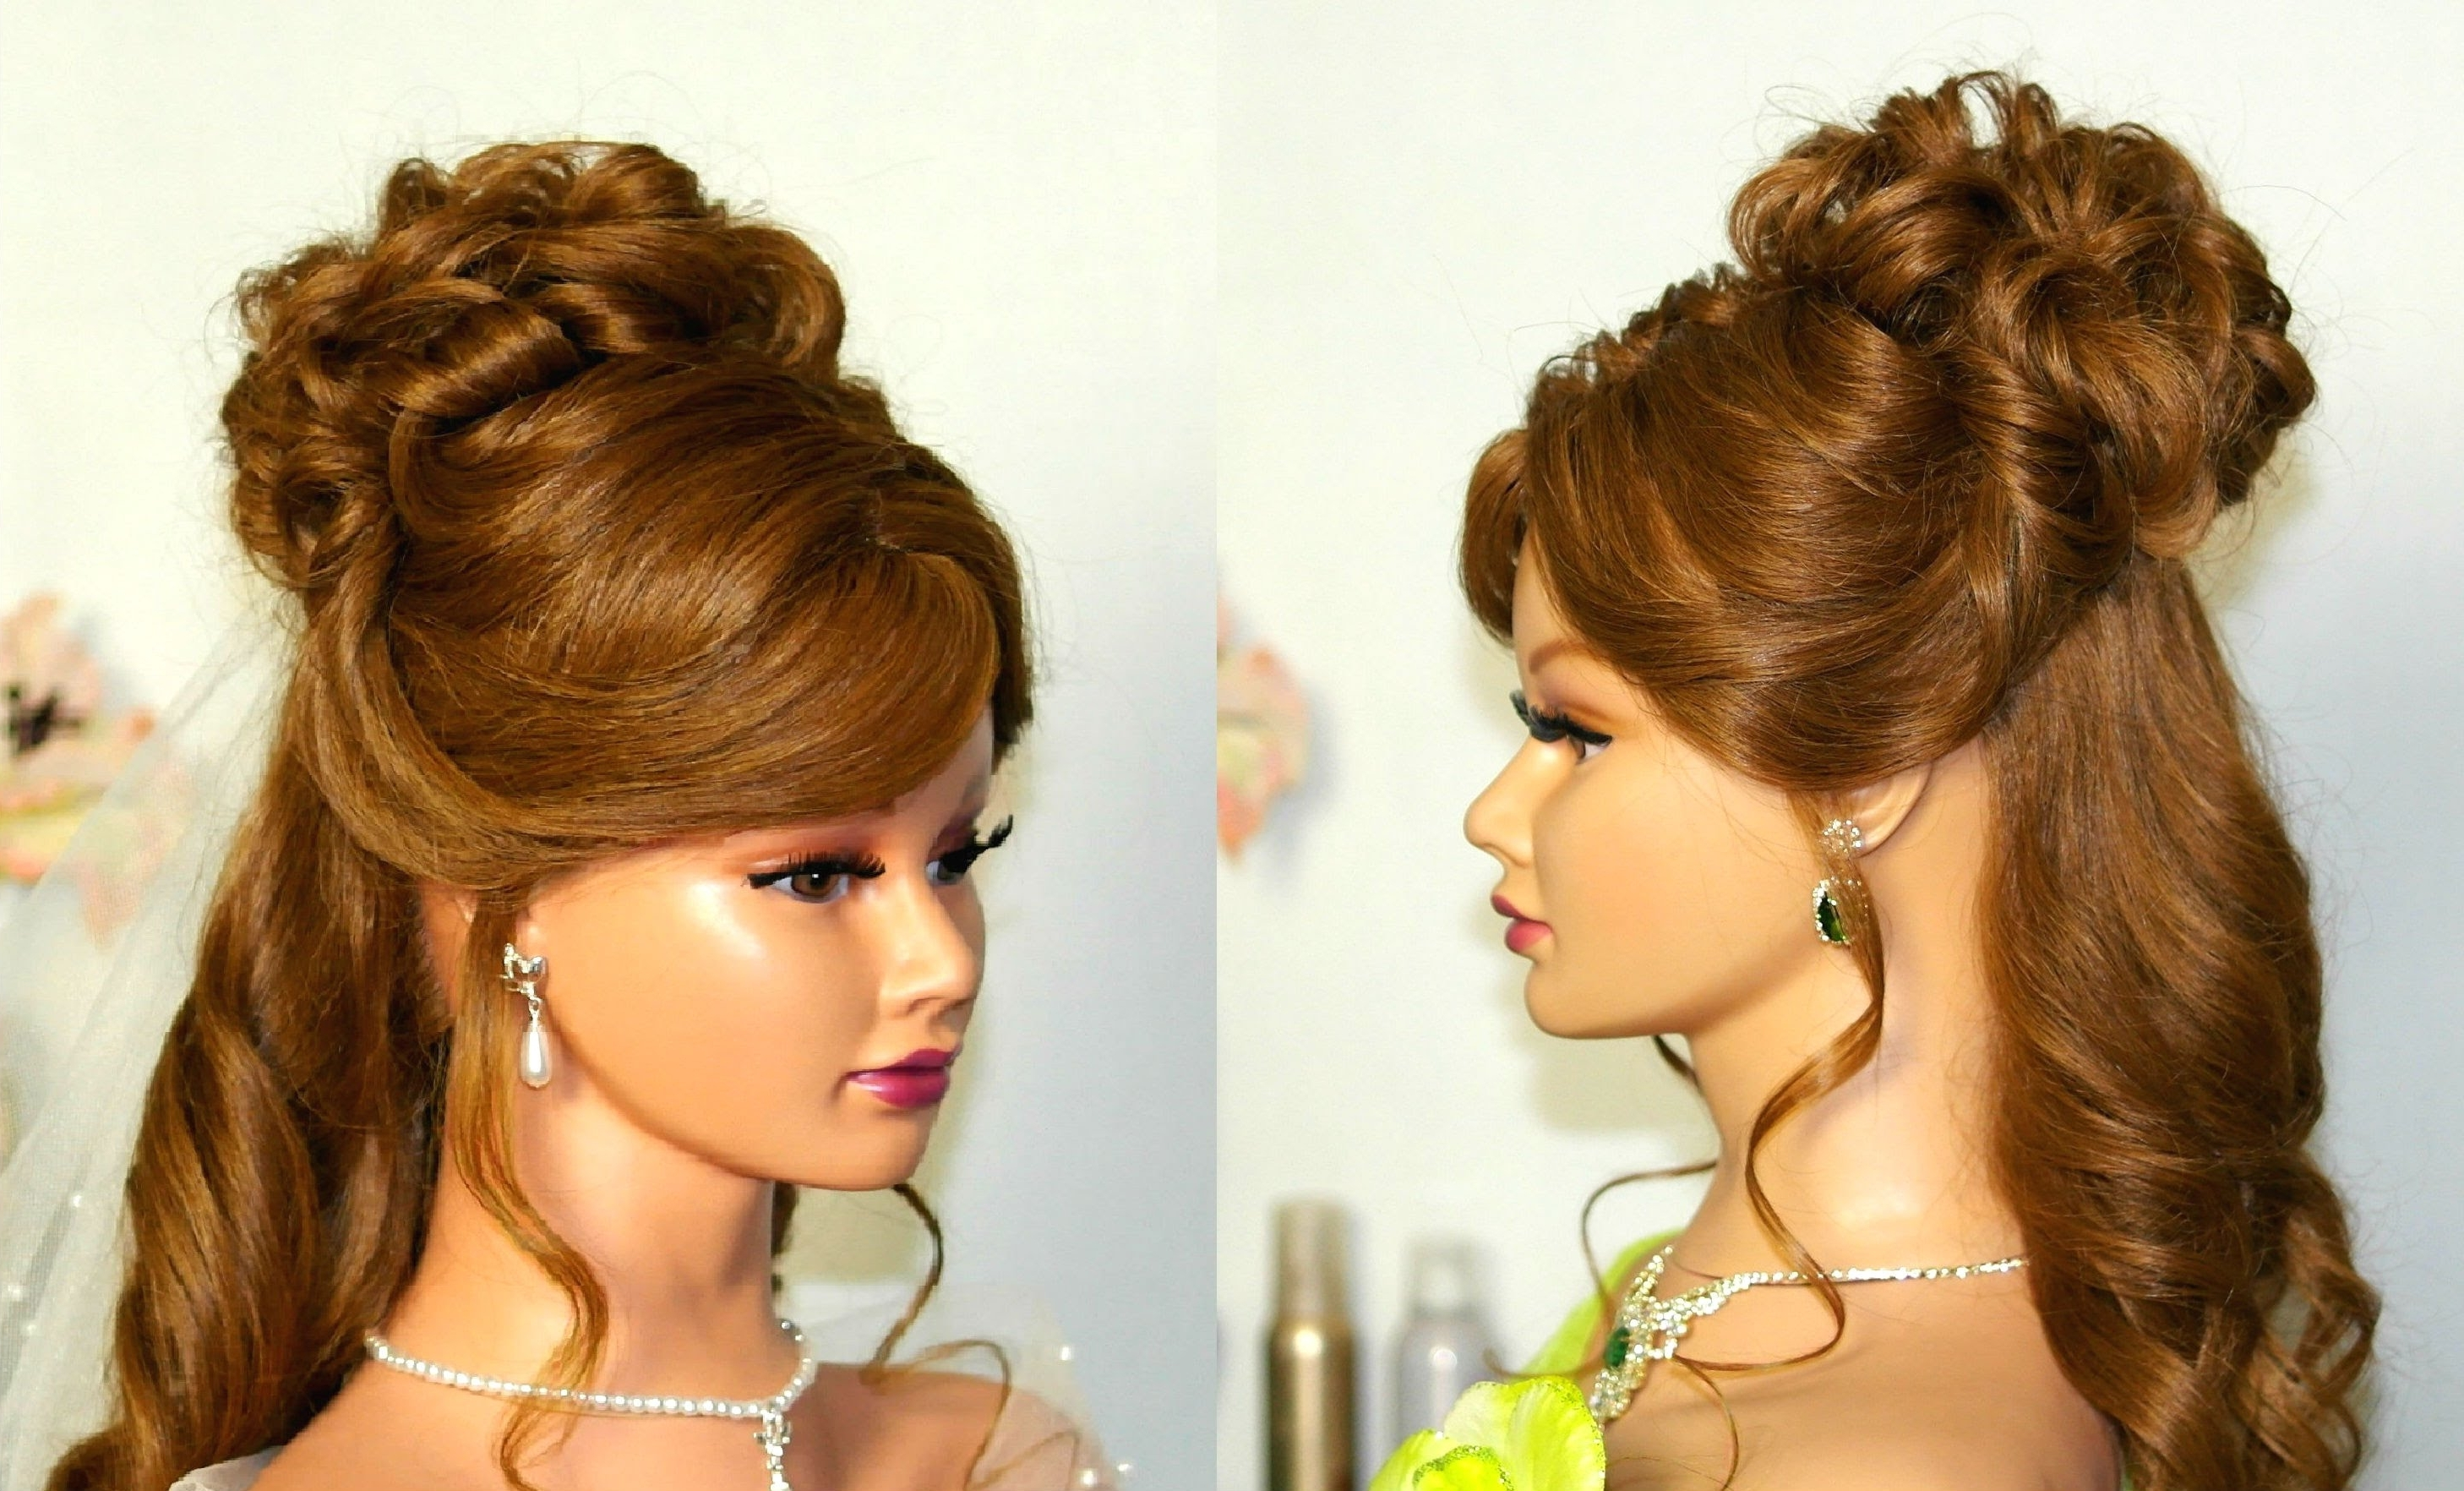 Wedding Hairstyle For Medium Long Hair: Curly Half Up Half Down Pertaining To Favorite Wedding Hairstyles For Long Down Curls Hair (View 14 of 15)